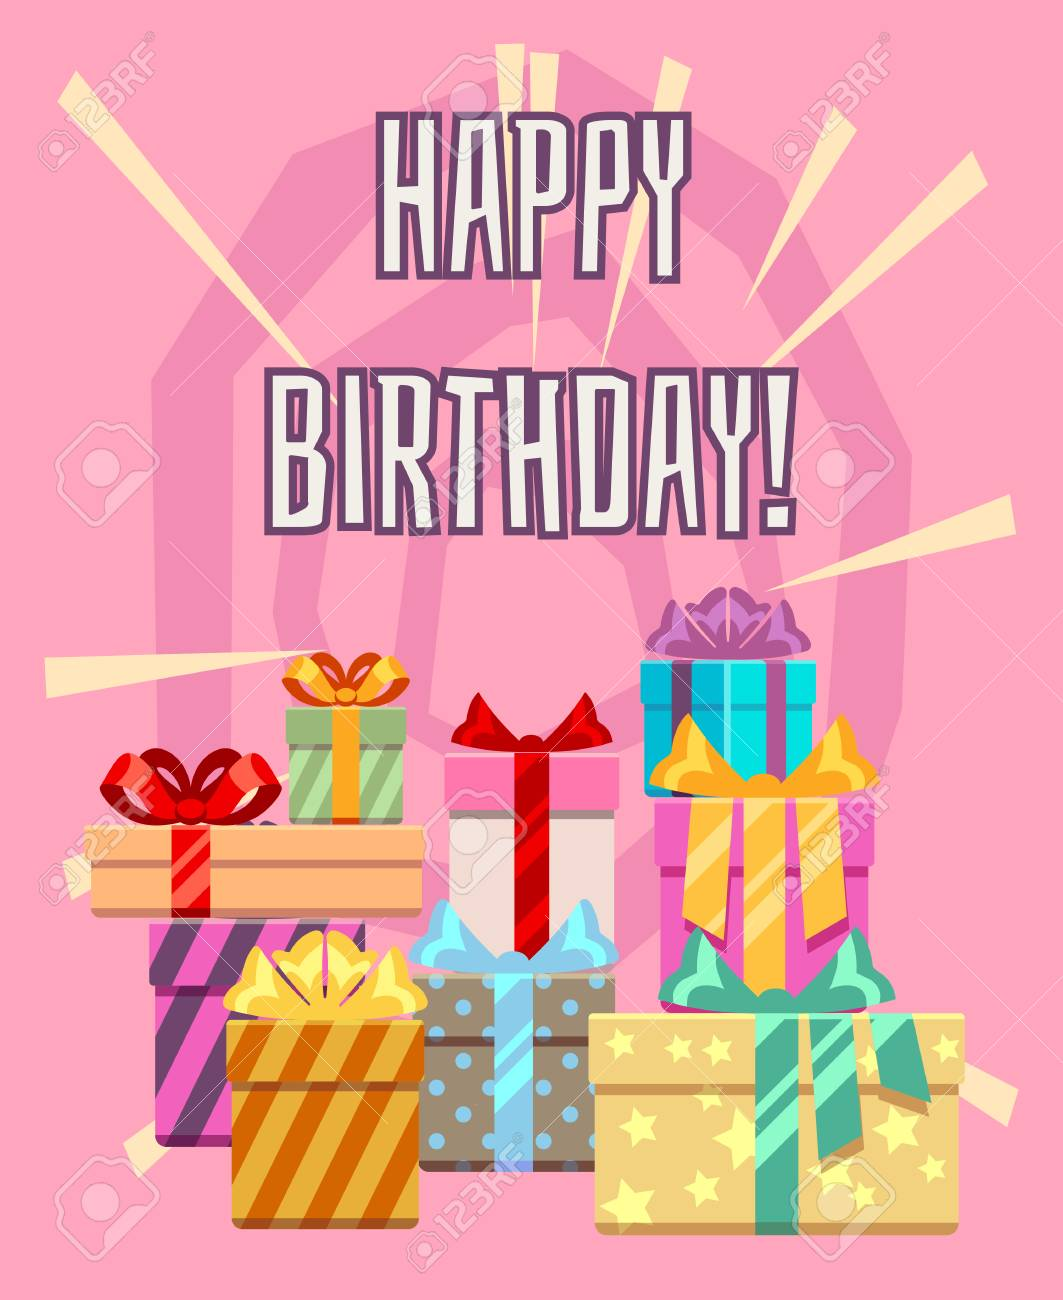 Happy Birthday Greeting Card With A Heap Of Gift Boxes Package To Holiday